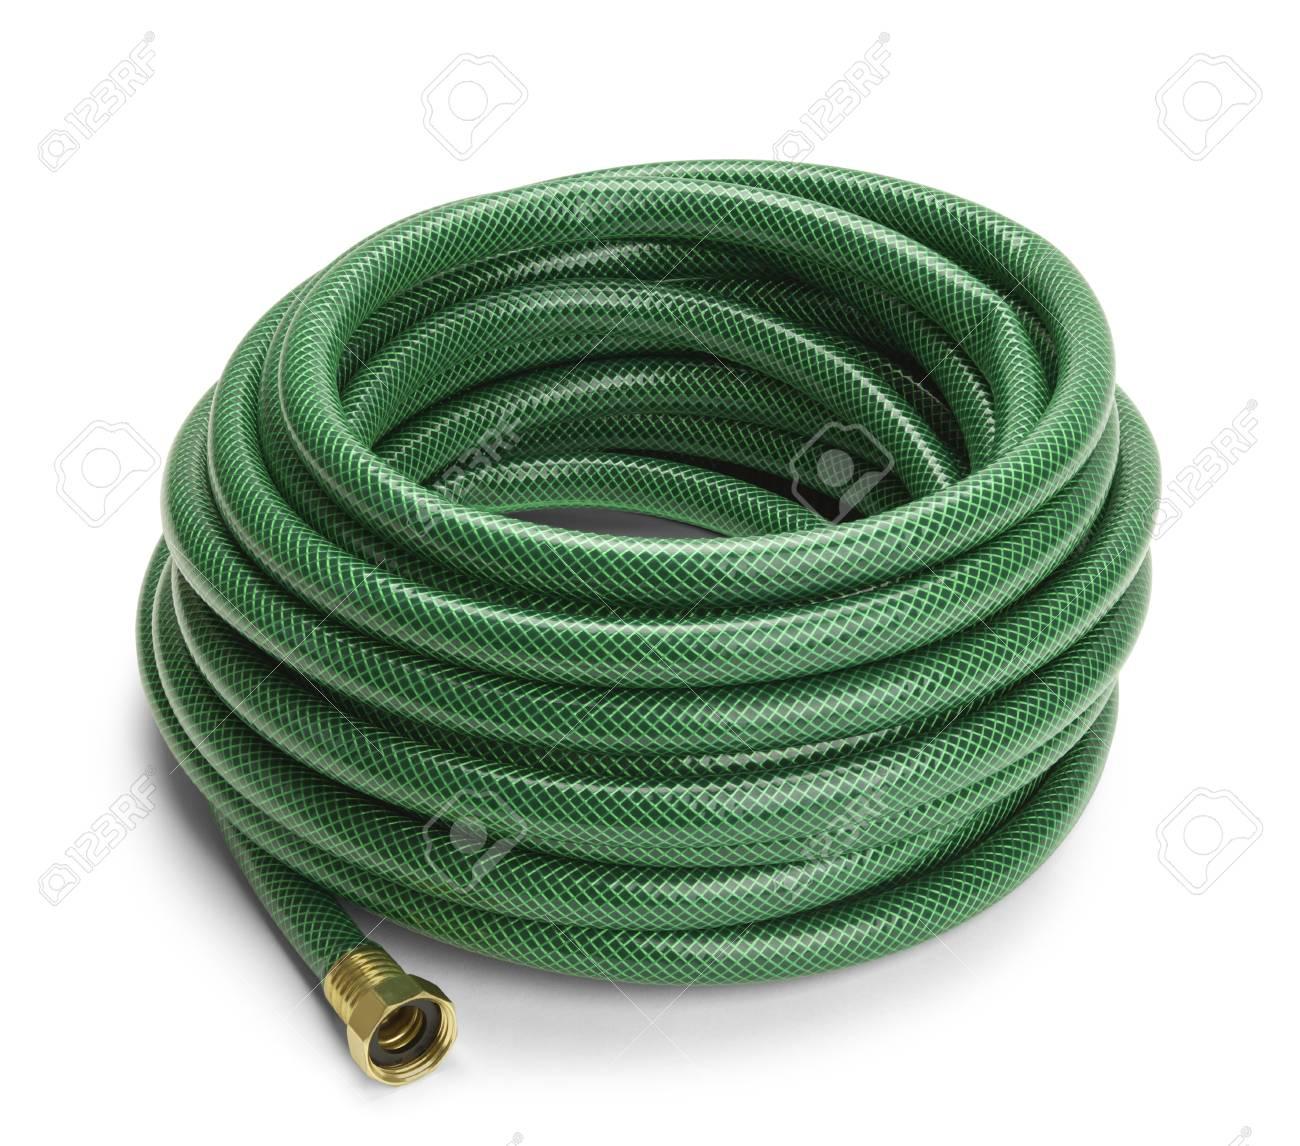 Green Garden Hose Rolled Up Isolated On A White Background. Stock Photo    66211796